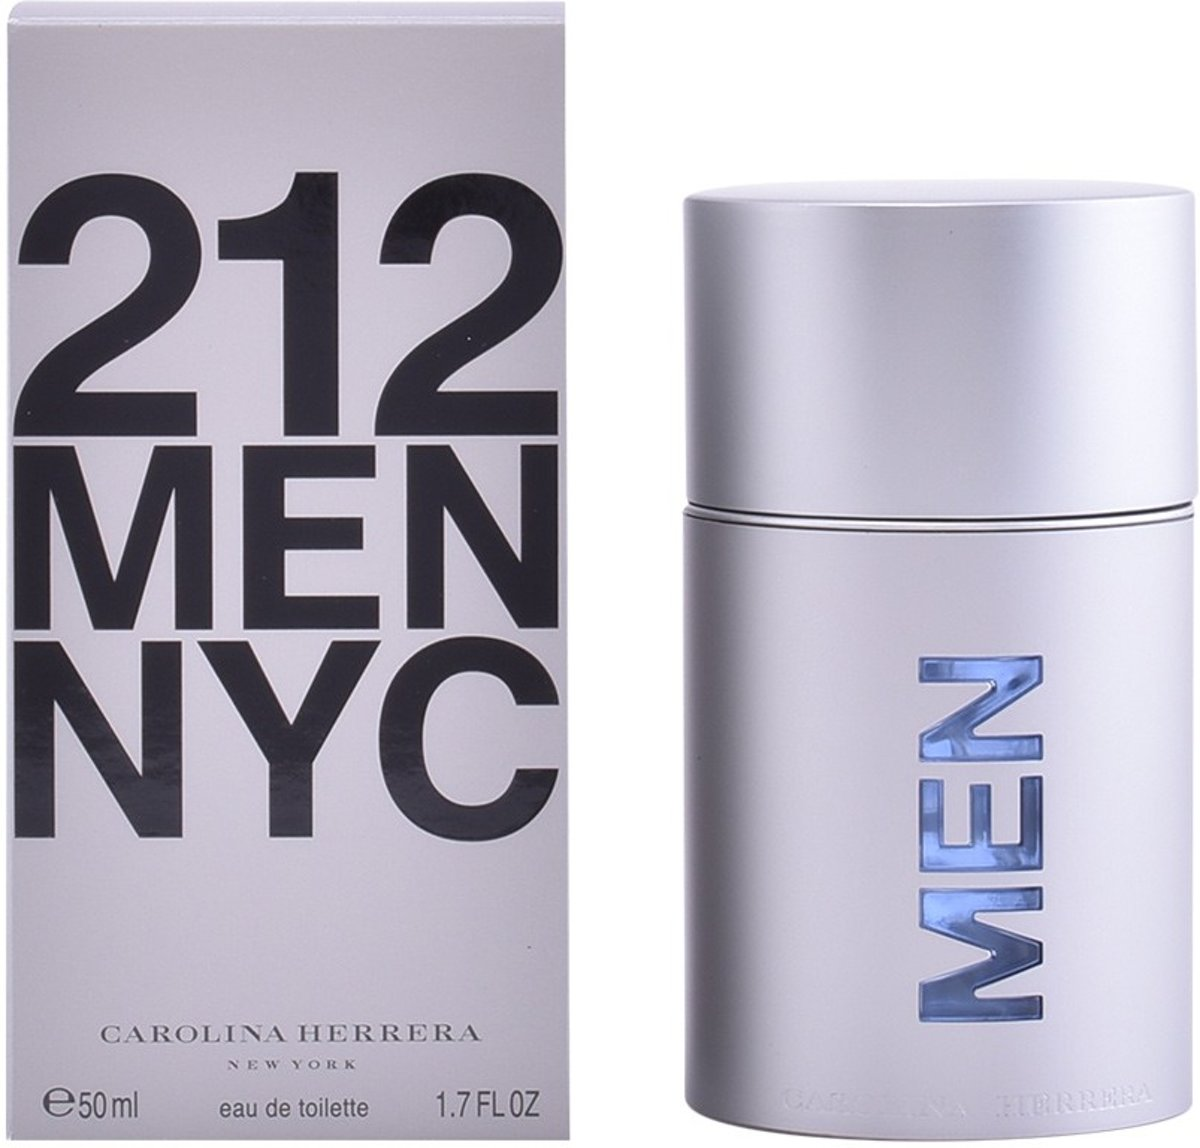 MULTI BUNDEL 2 stuks 212 NYC MEN Eau de Toilette Spray 50 ml